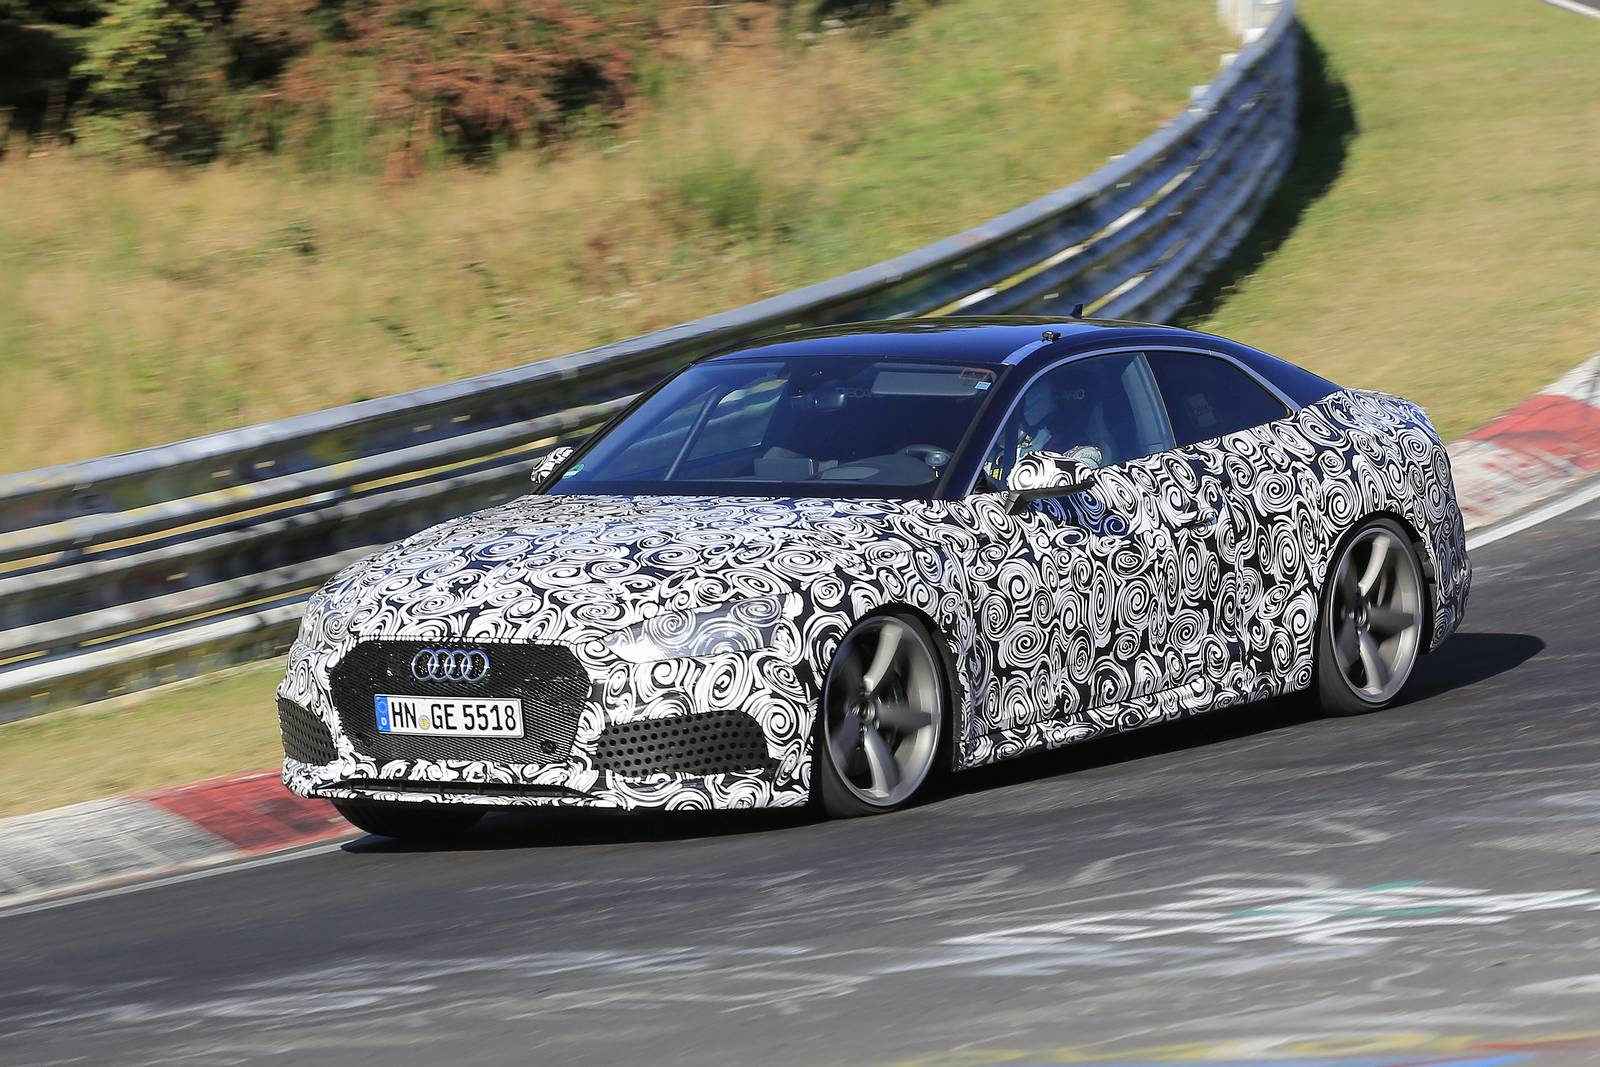 2018 audi rs5. wonderful rs5 2018 audi rs5 latest spy shots supercar with audi rs5